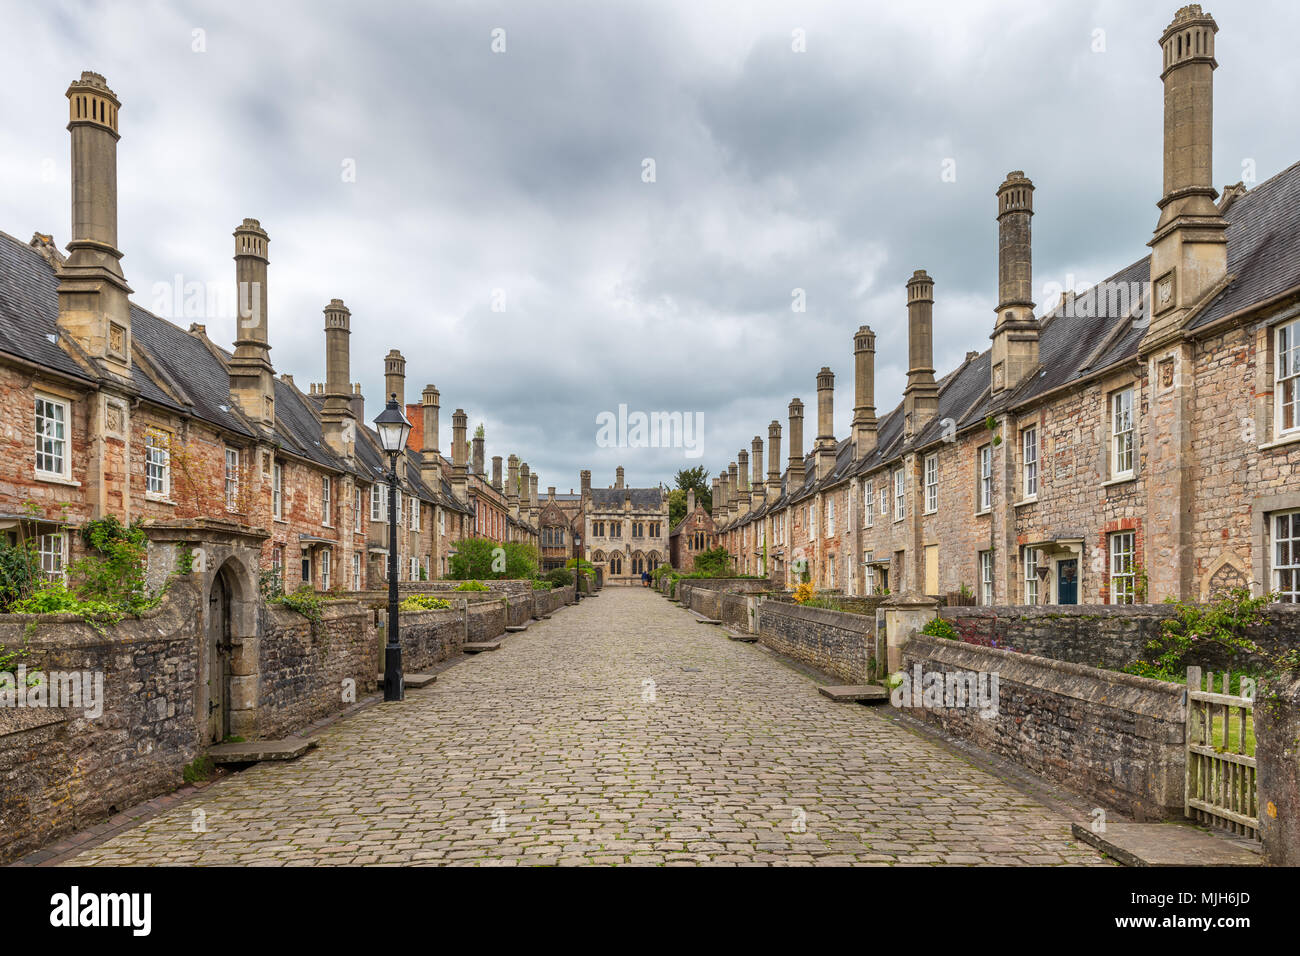 Vicars' Close in Wells Somerset, viewed looking towards the Vicars' Hall is claimed to be the oldest purely residential street with original buildings - Stock Image